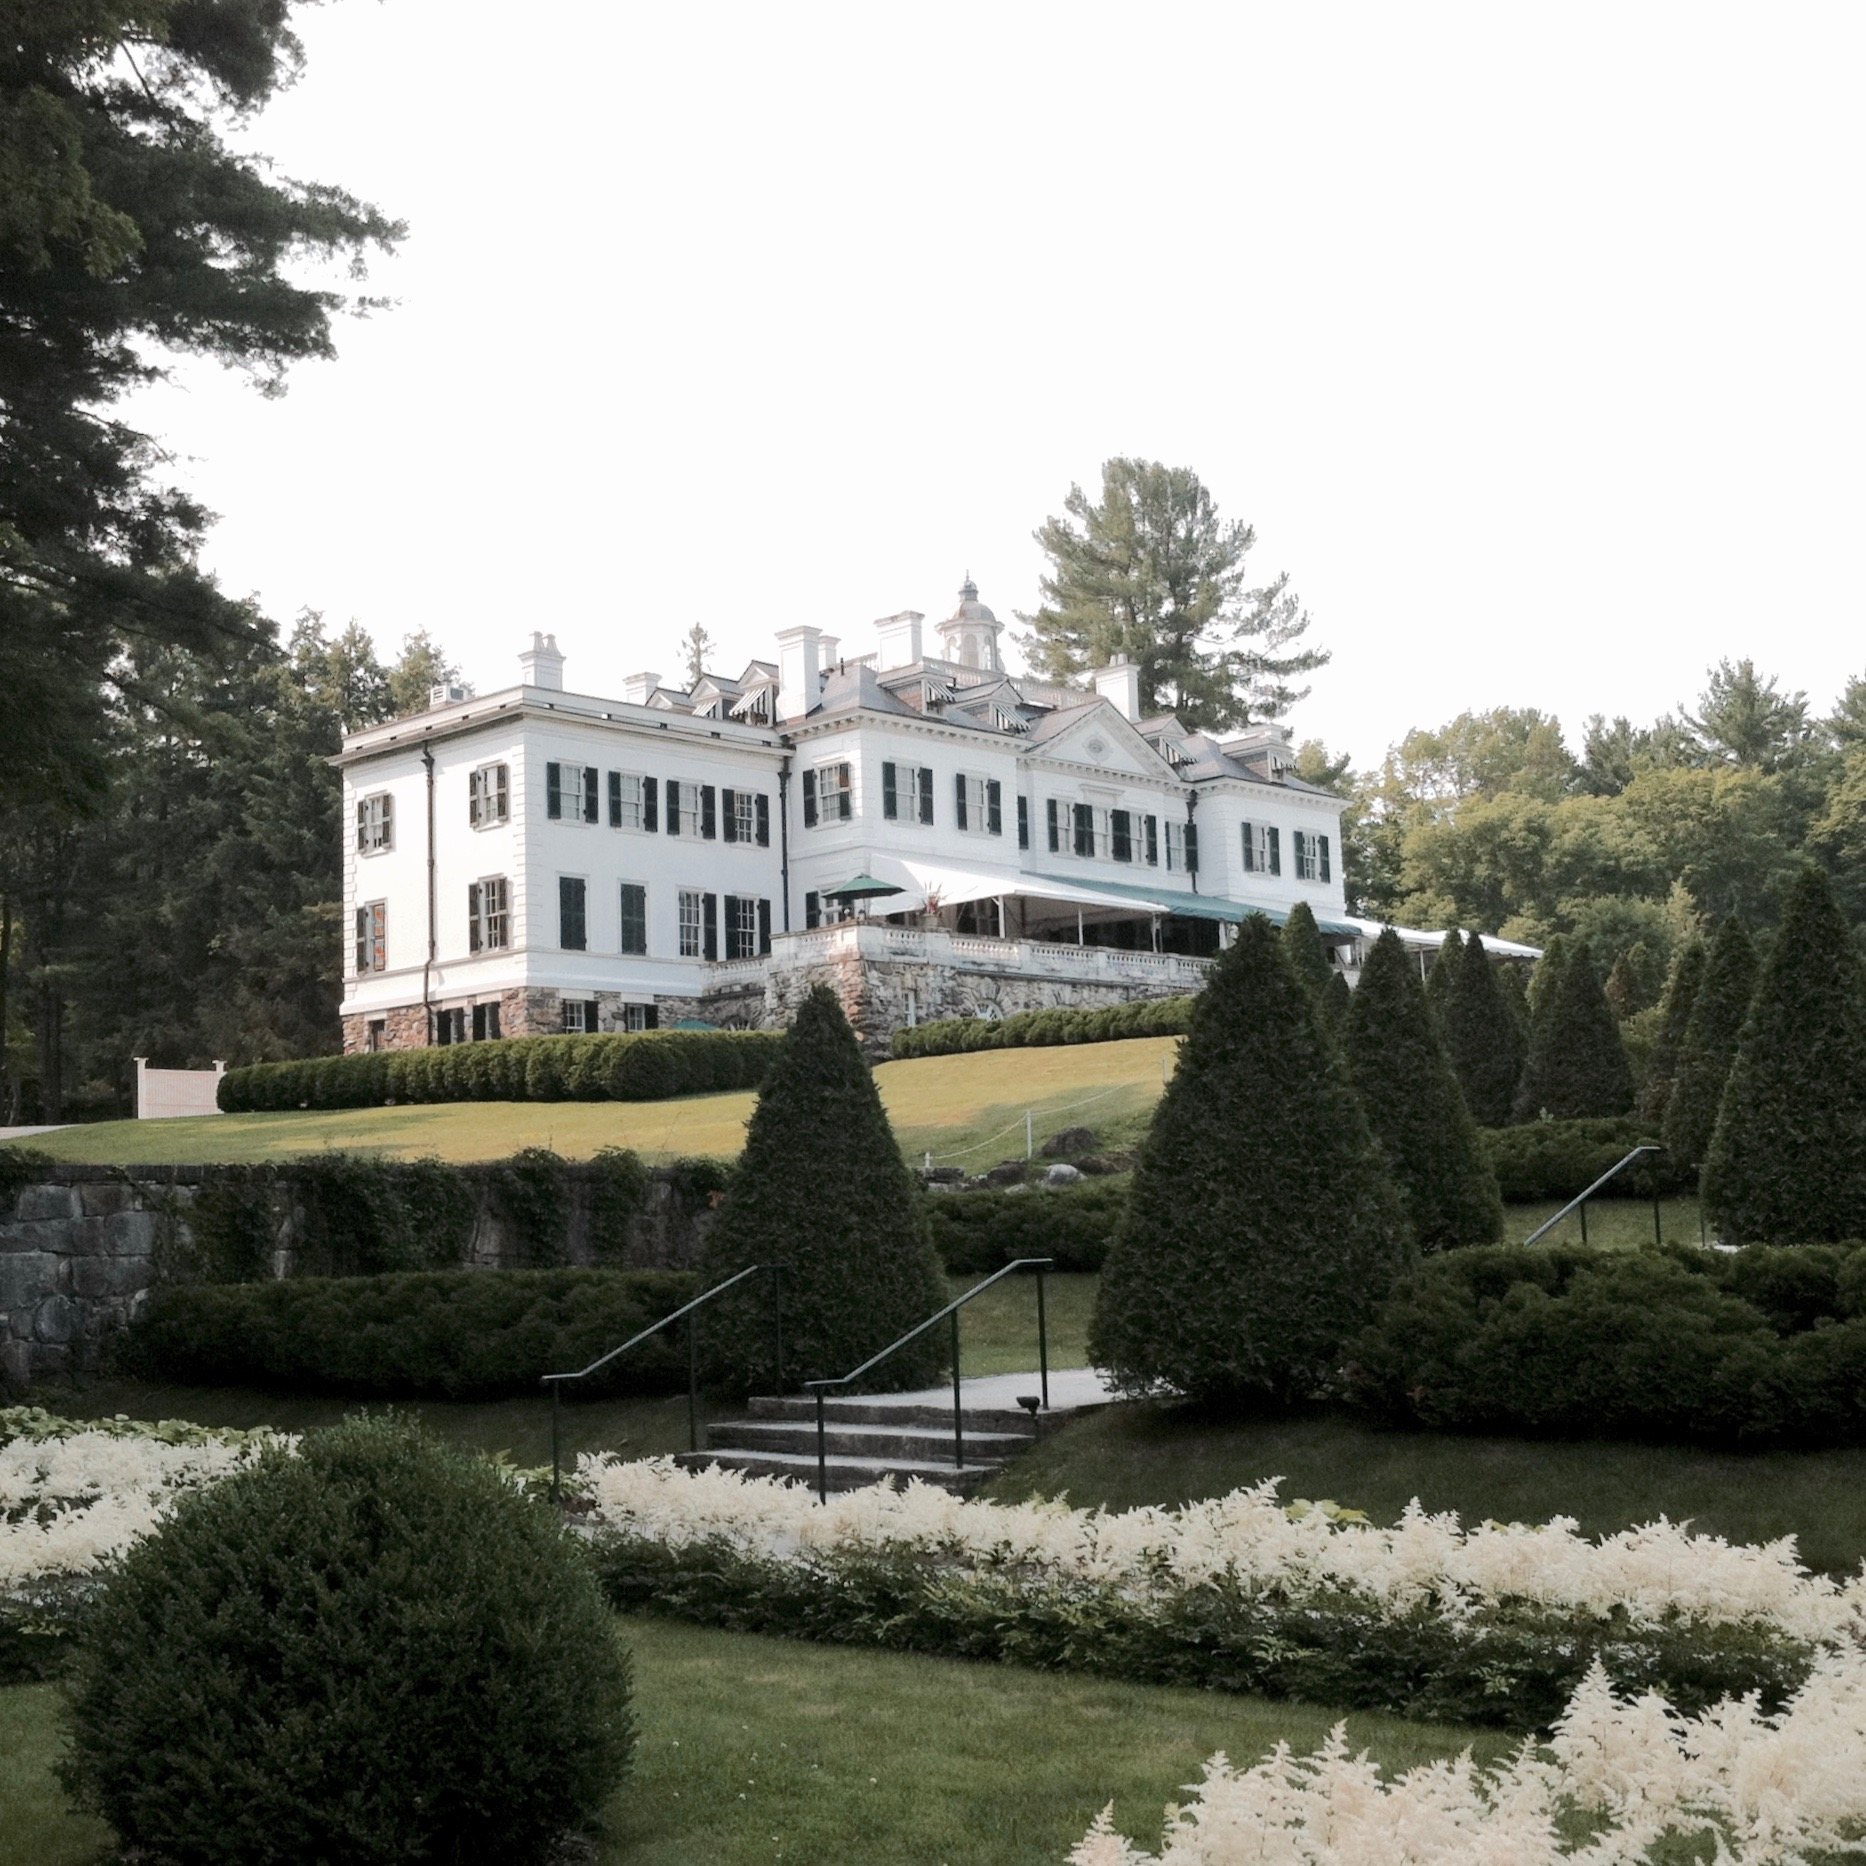 A view of the house from the gardens. — N.M-Y. '15